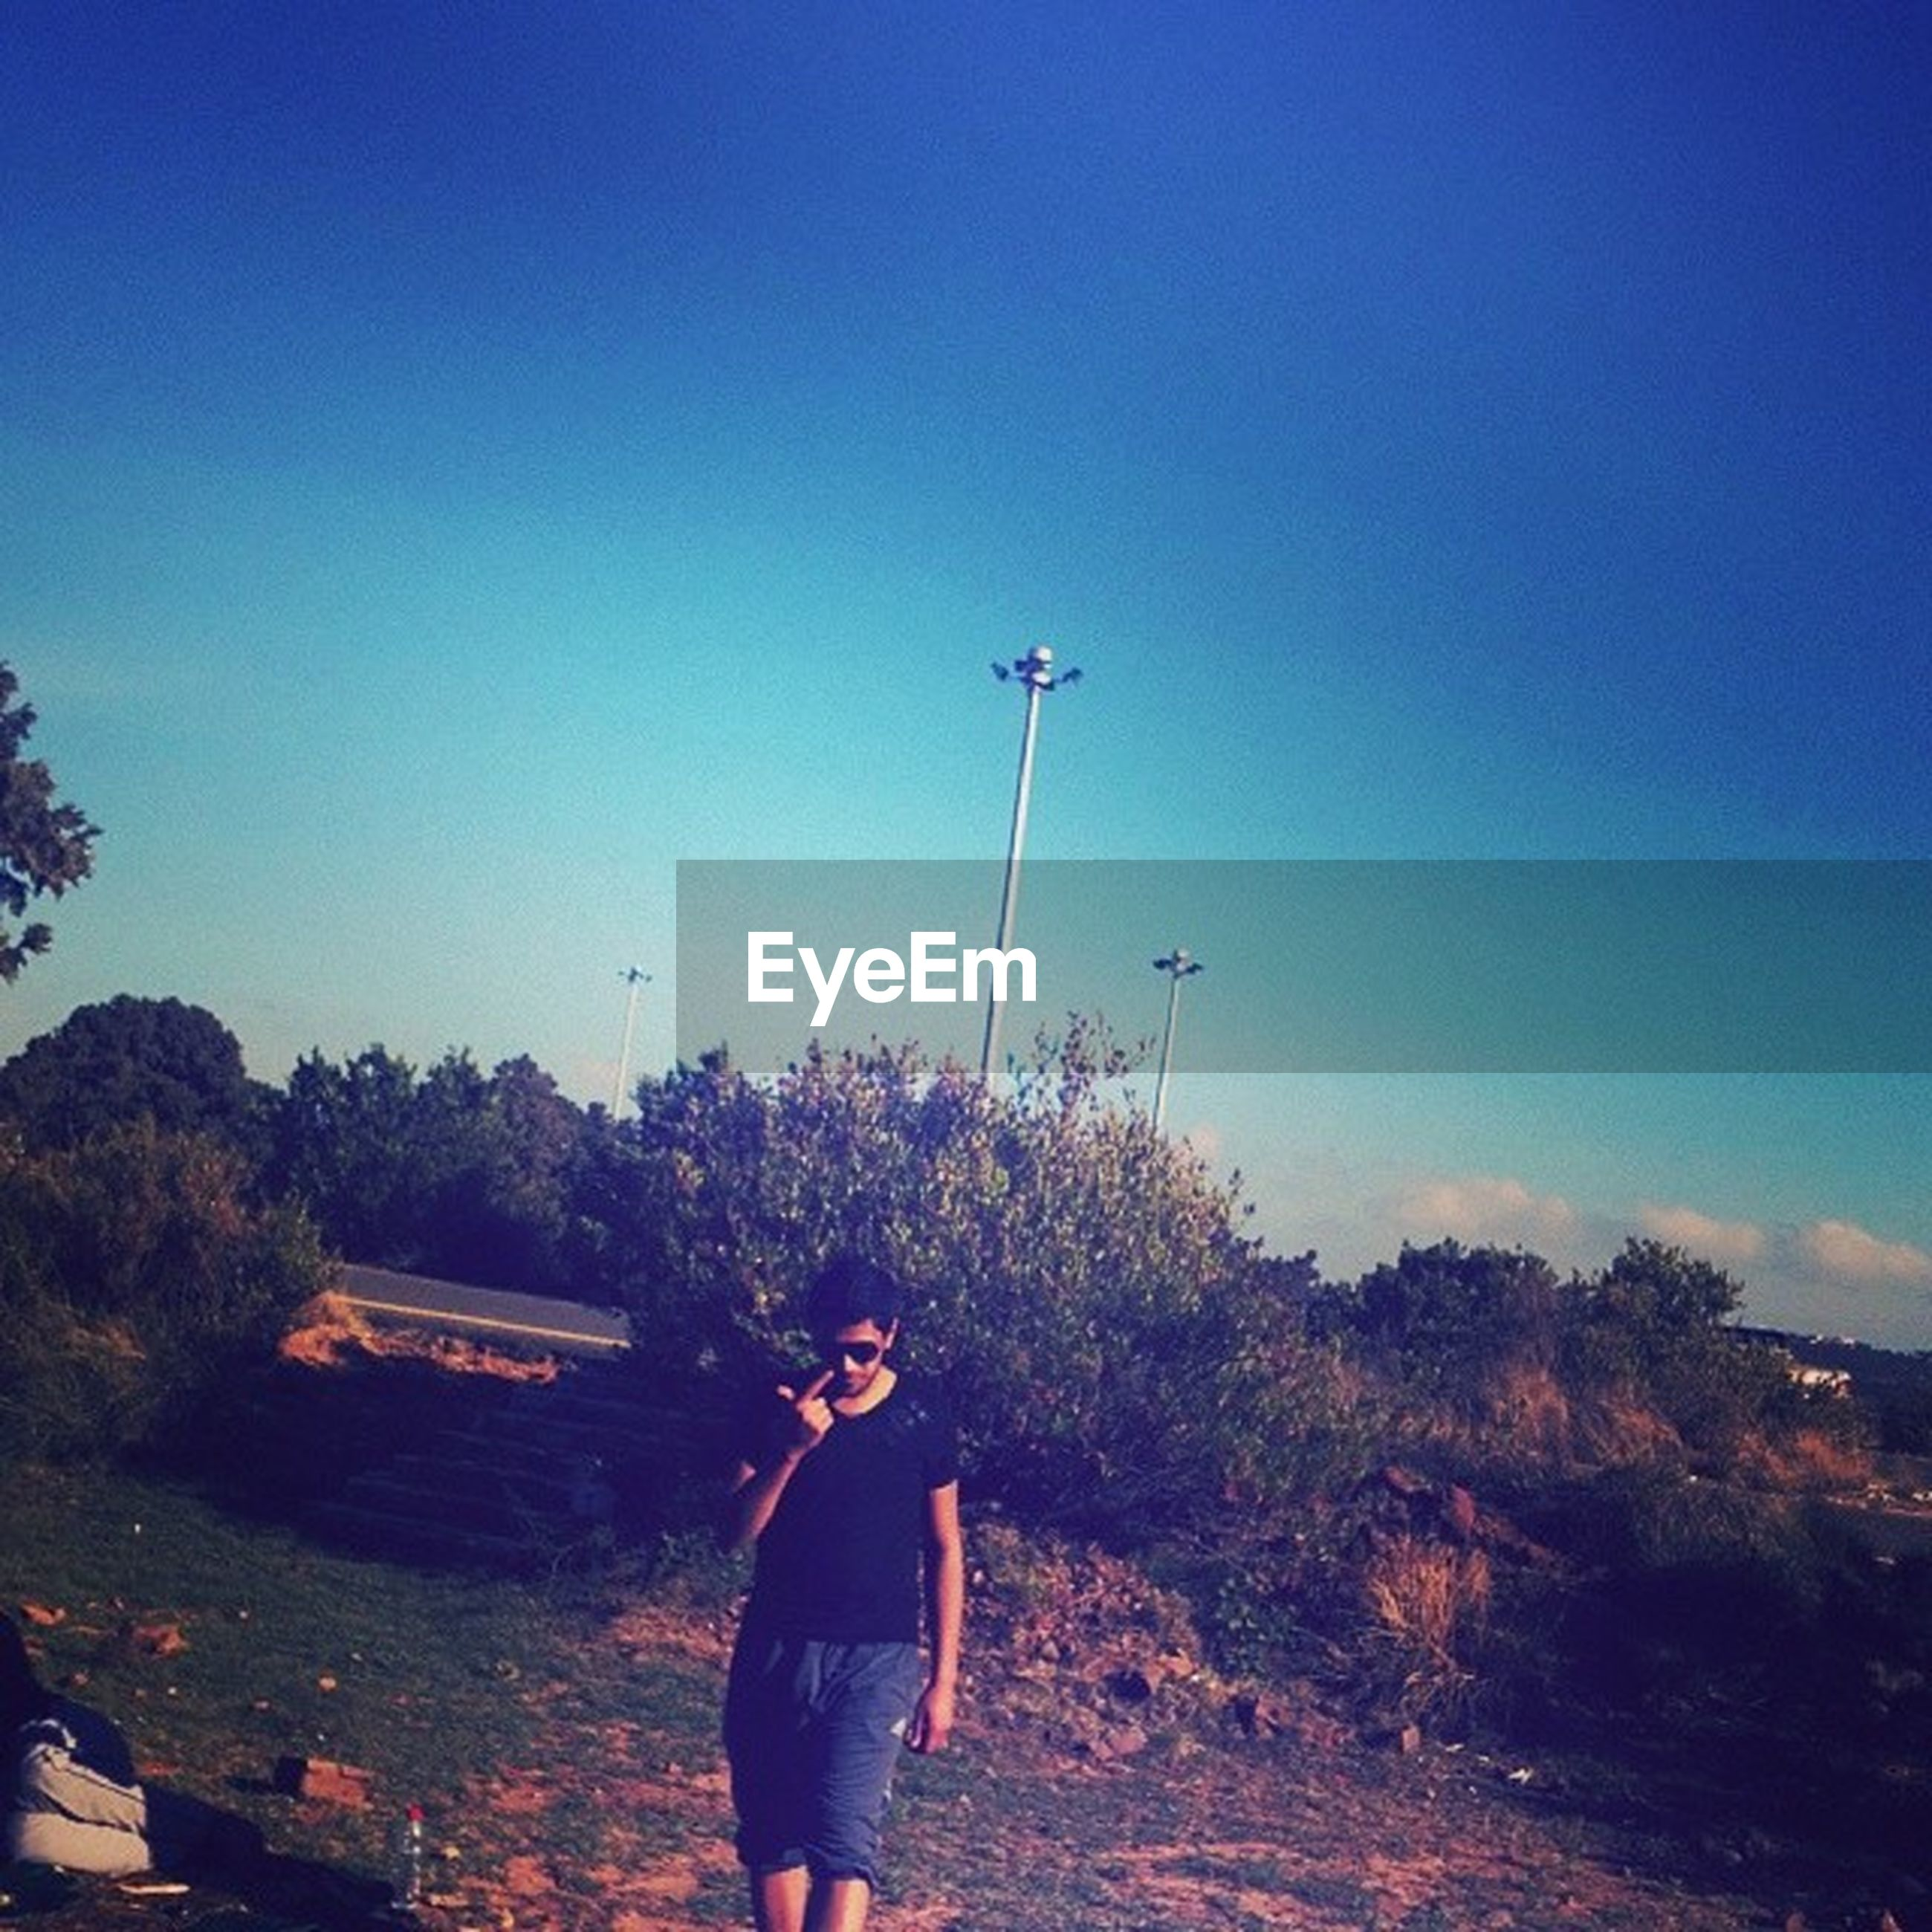 lifestyles, leisure activity, standing, blue, rear view, clear sky, casual clothing, copy space, full length, men, tree, person, sky, three quarter length, walking, nature, tranquility, landscape